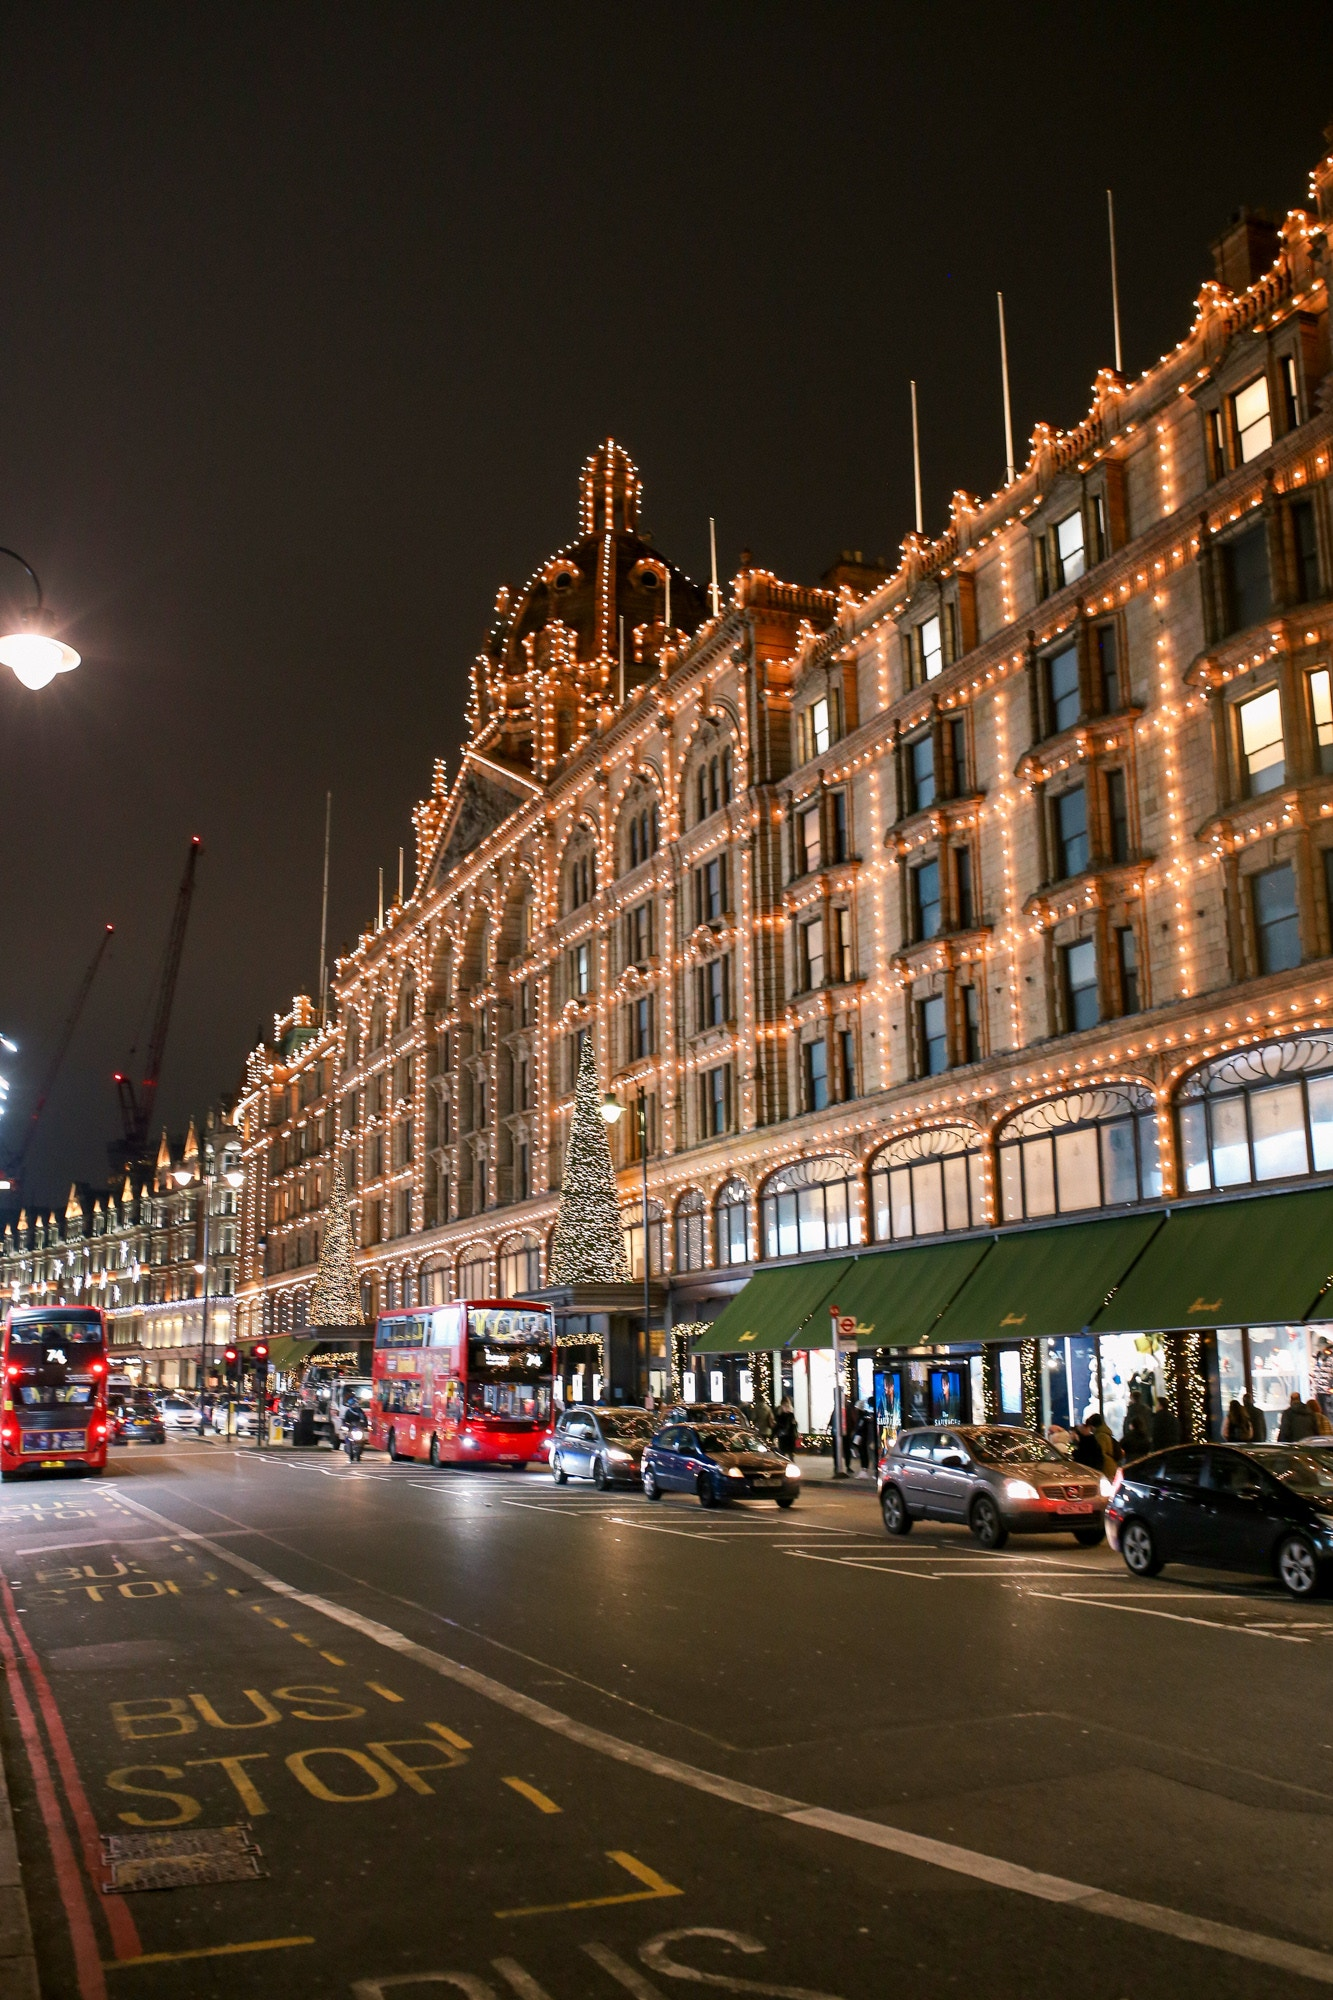 Harrods lit up for the Christmas Holidays is a magical sight. Hotel Xenia London is located a 15 minute walk from Harrods Department store.